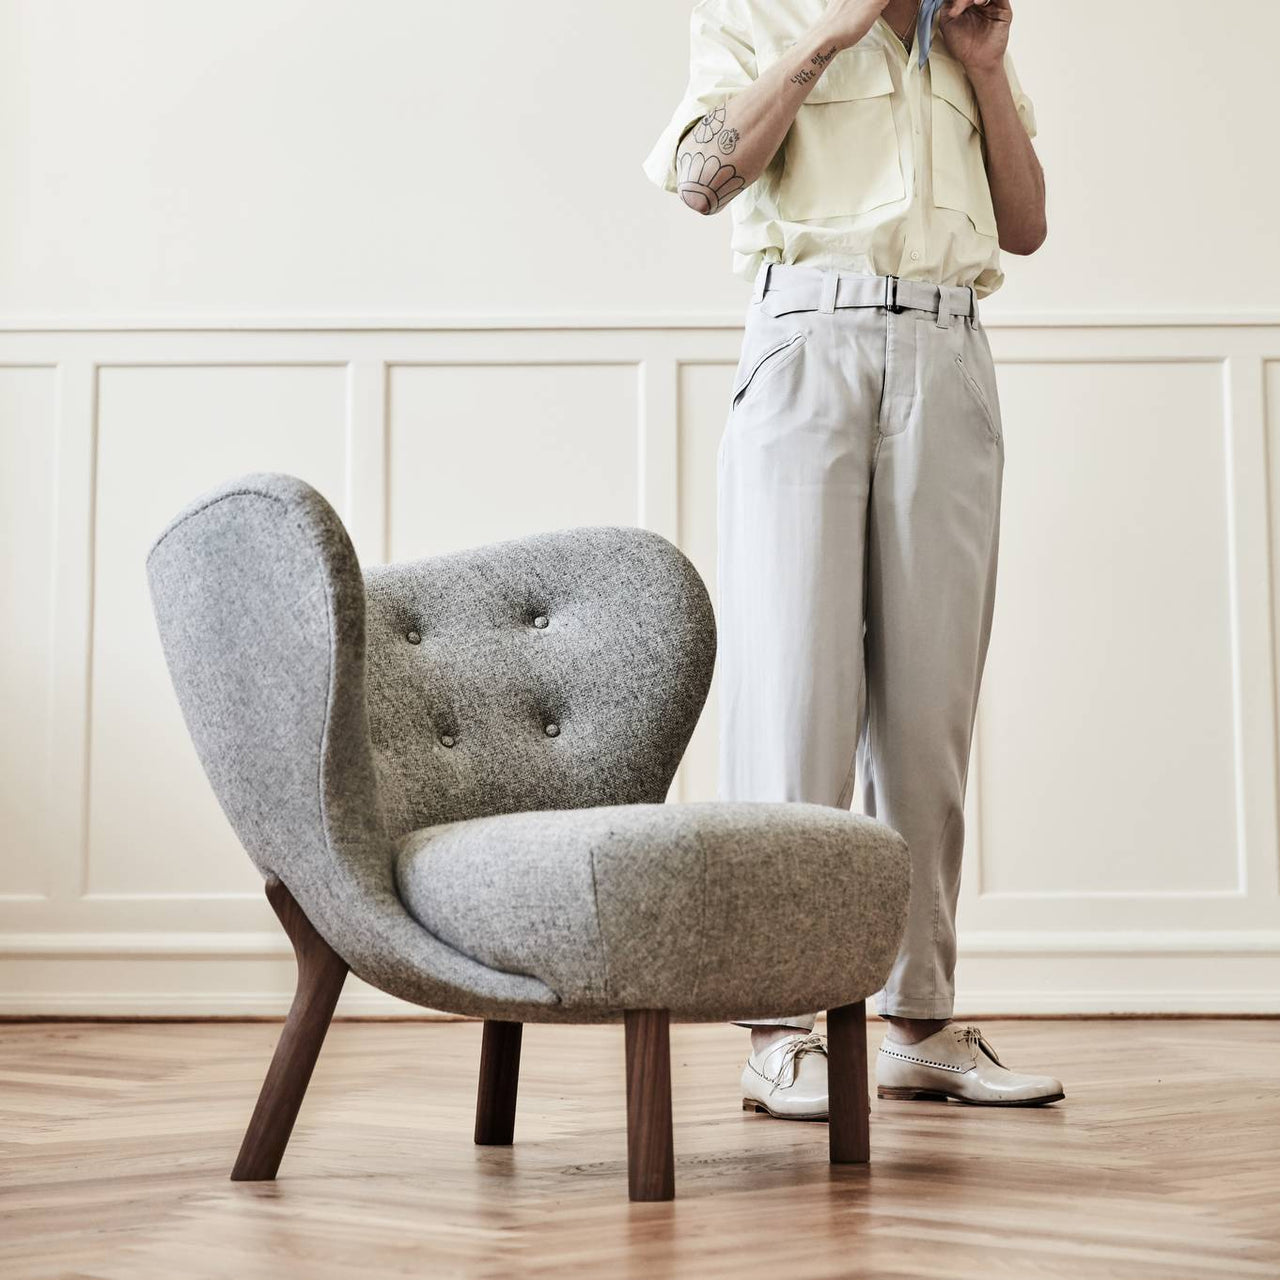 Little Petra Lounge Chair Vb1 Buy Tradition Online At A R